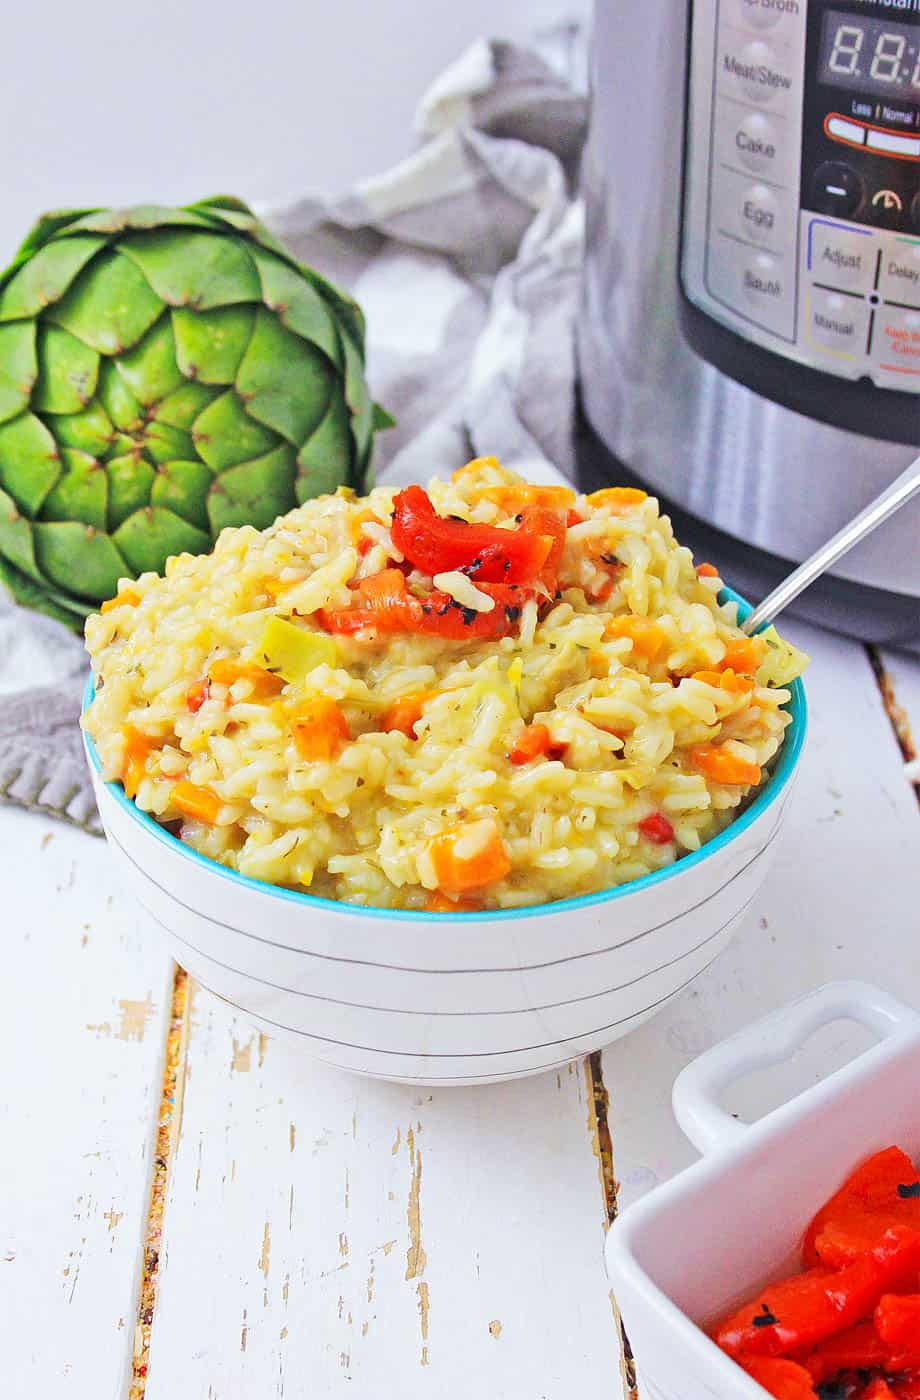 instant pot risotto next to artichoke and instant pot